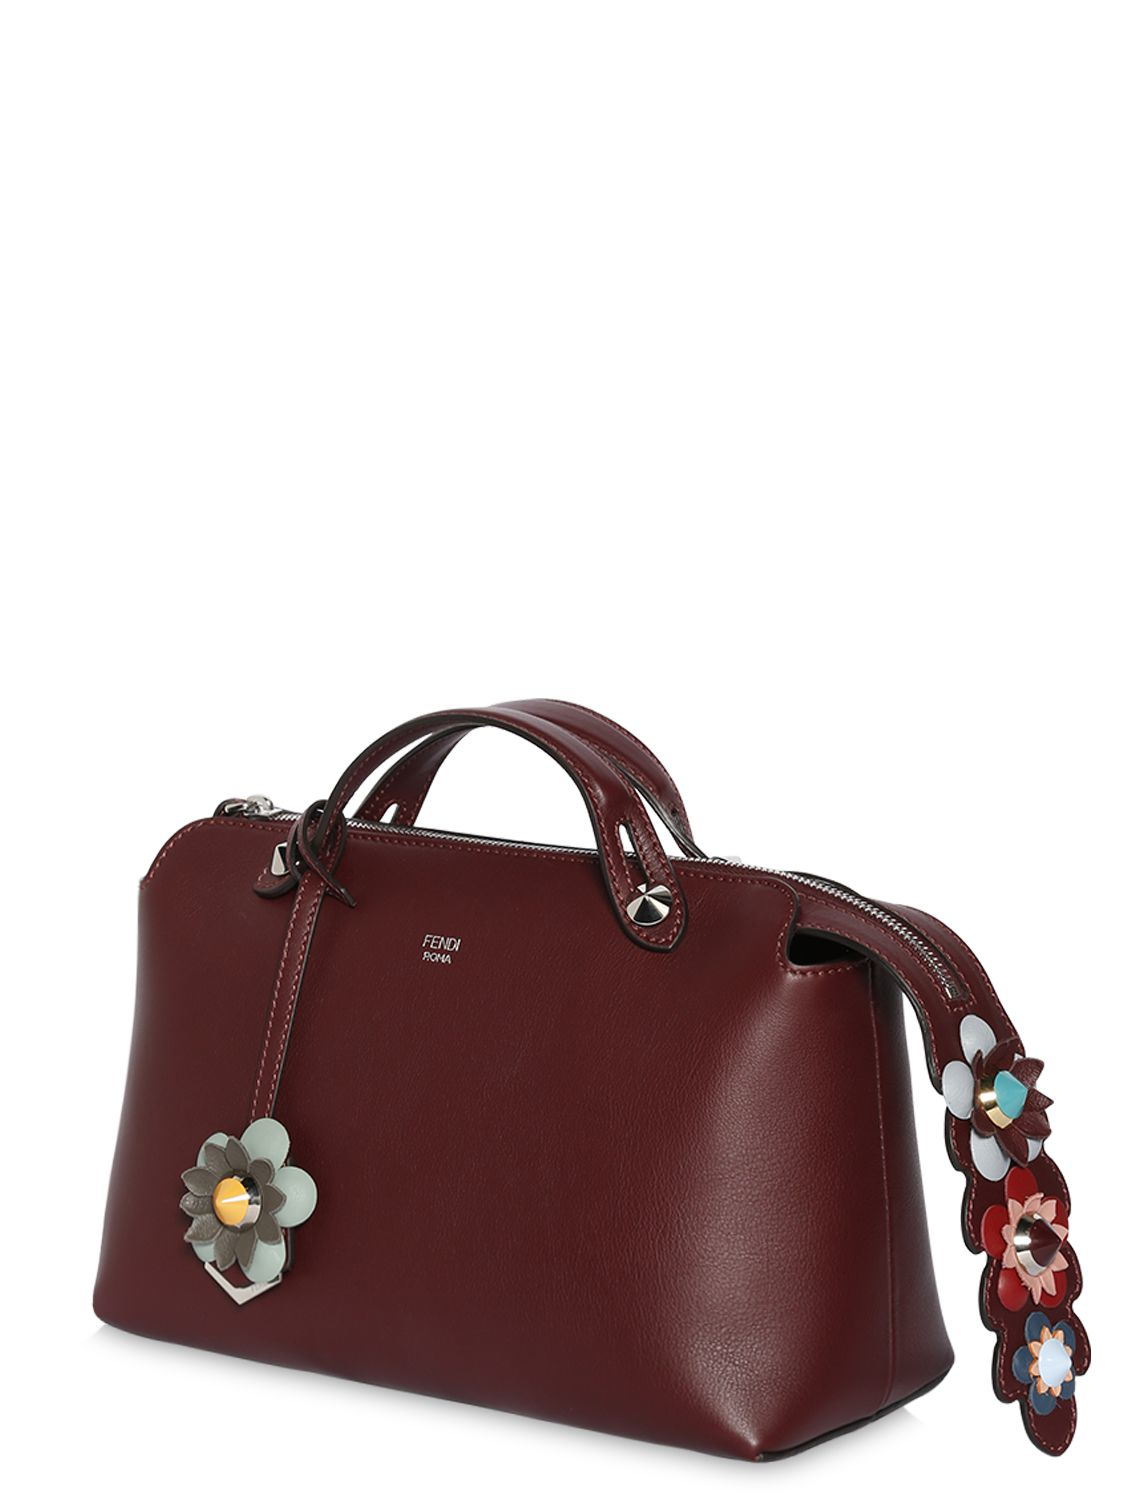 f2b3101abbc8 Lyst - Fendi By The Way Small Leather Tote in Brown